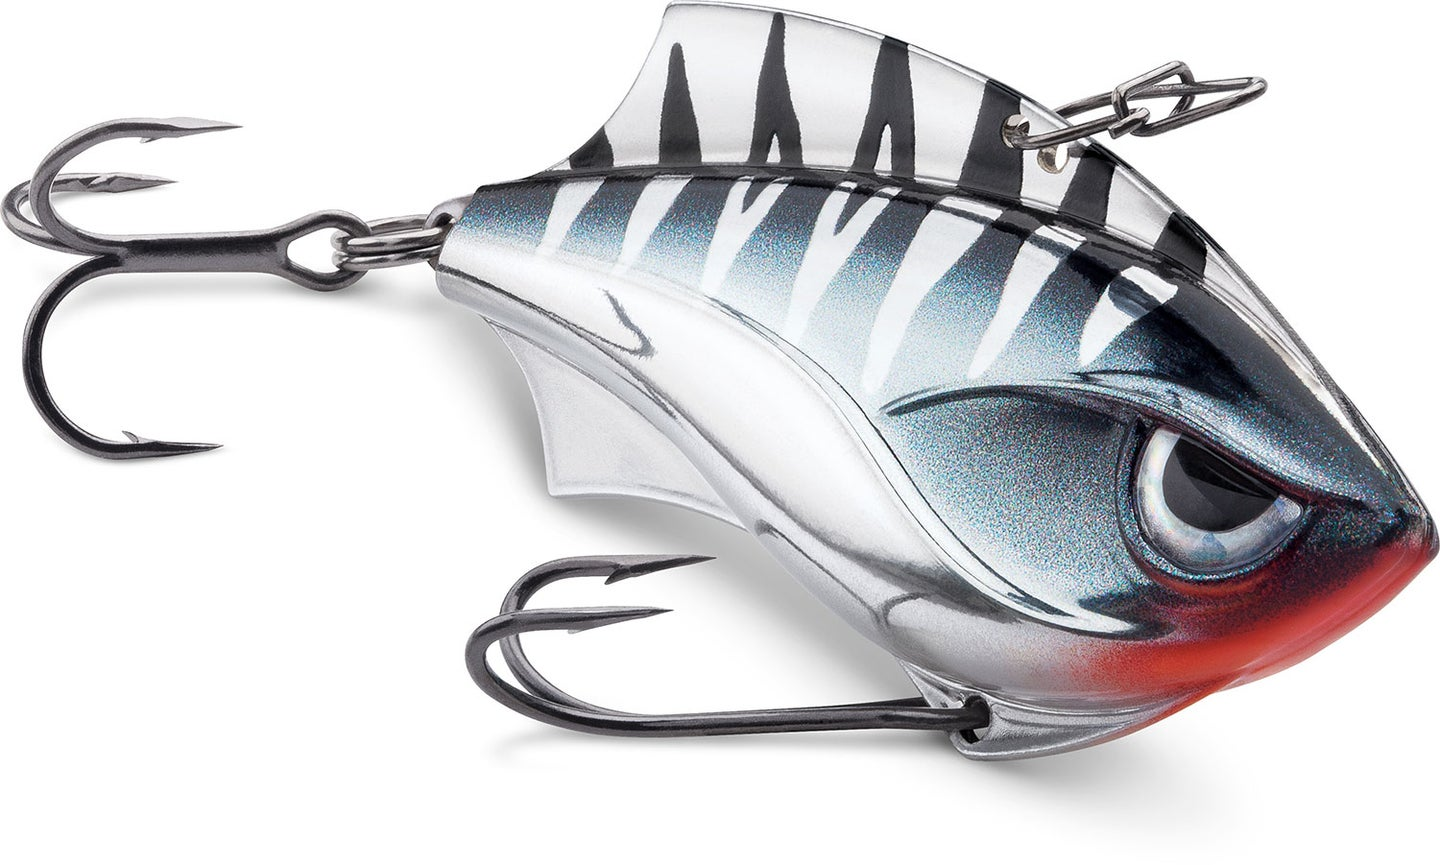 A black and silver fishing lure.